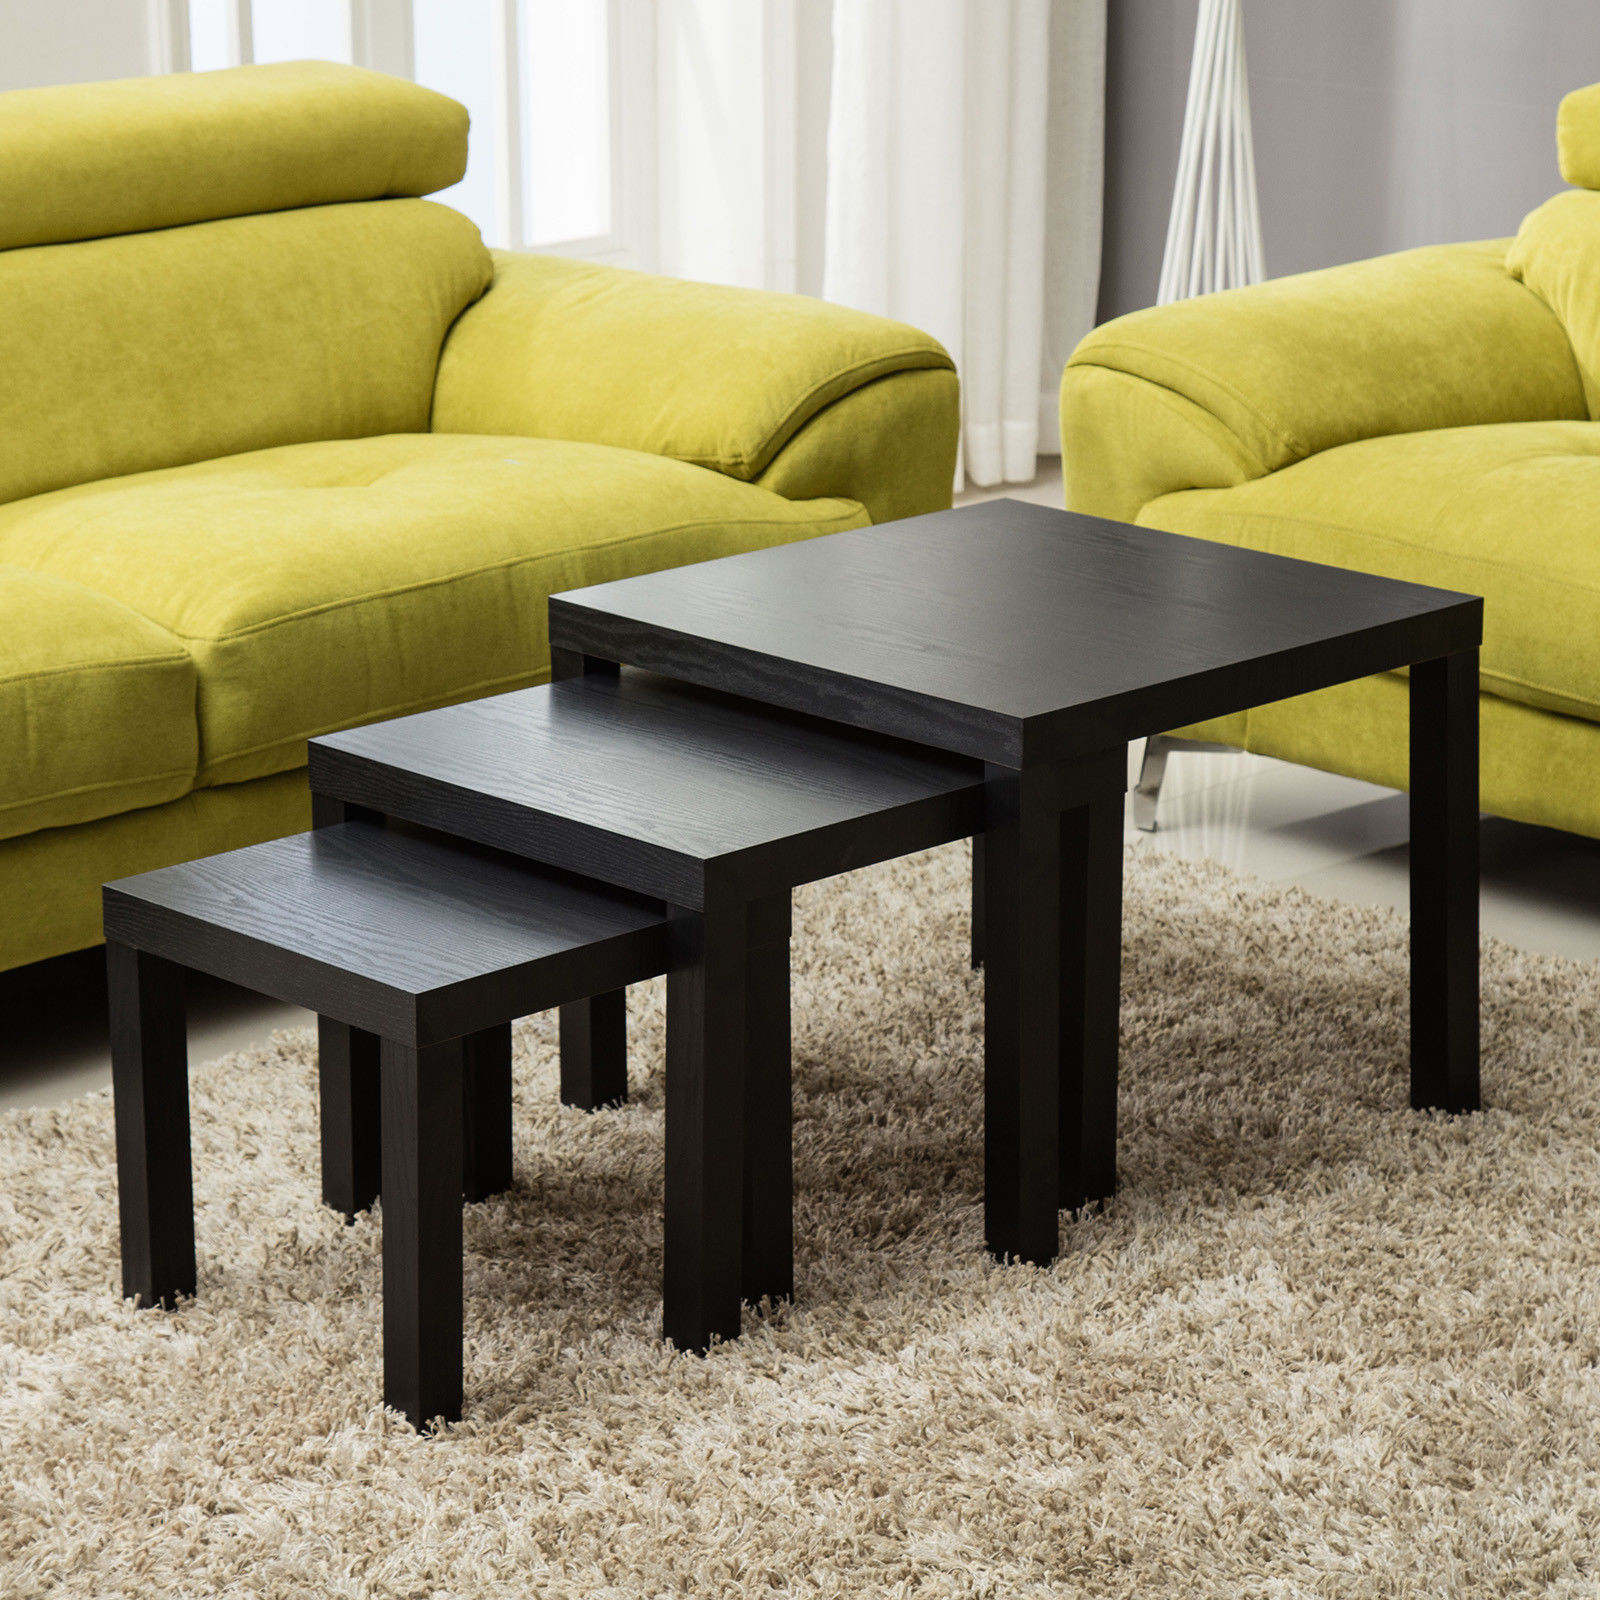 Modern Nest Of 3 Tables Side End Coffee Table Living Room Furniture Black